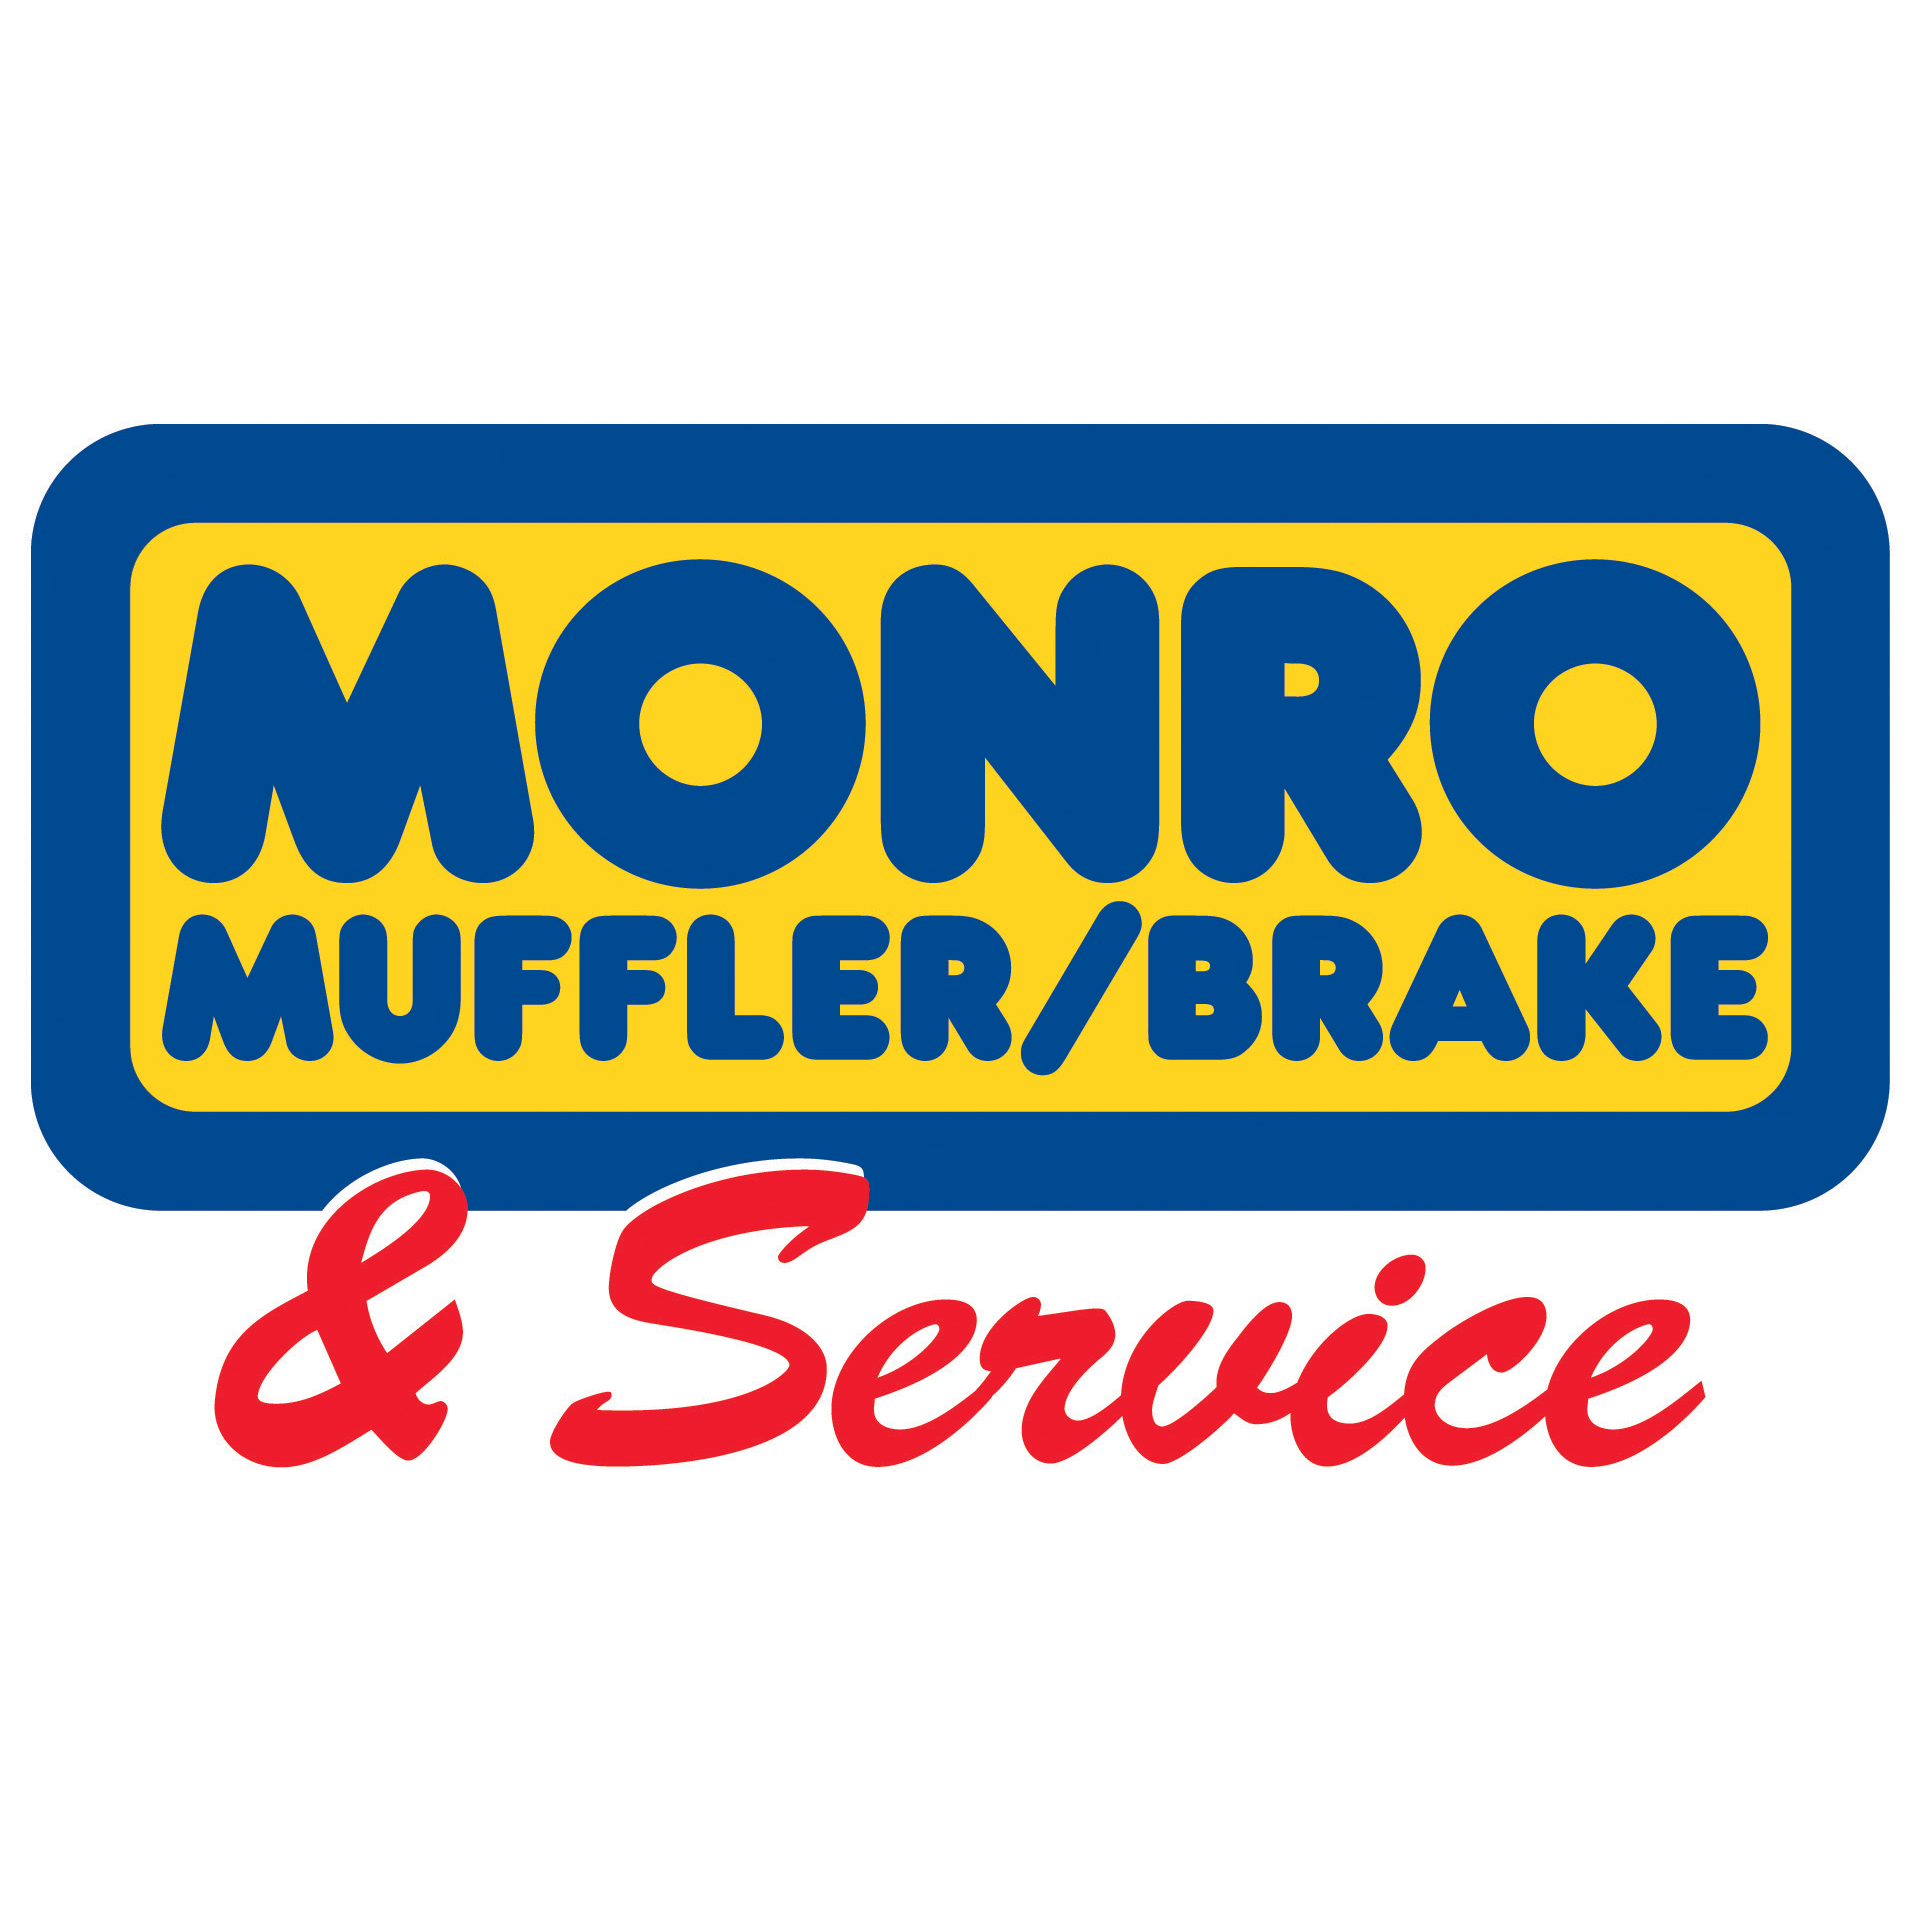 Monro Muffler Brake & Service - Willow Grove, PA - General Auto Repair & Service